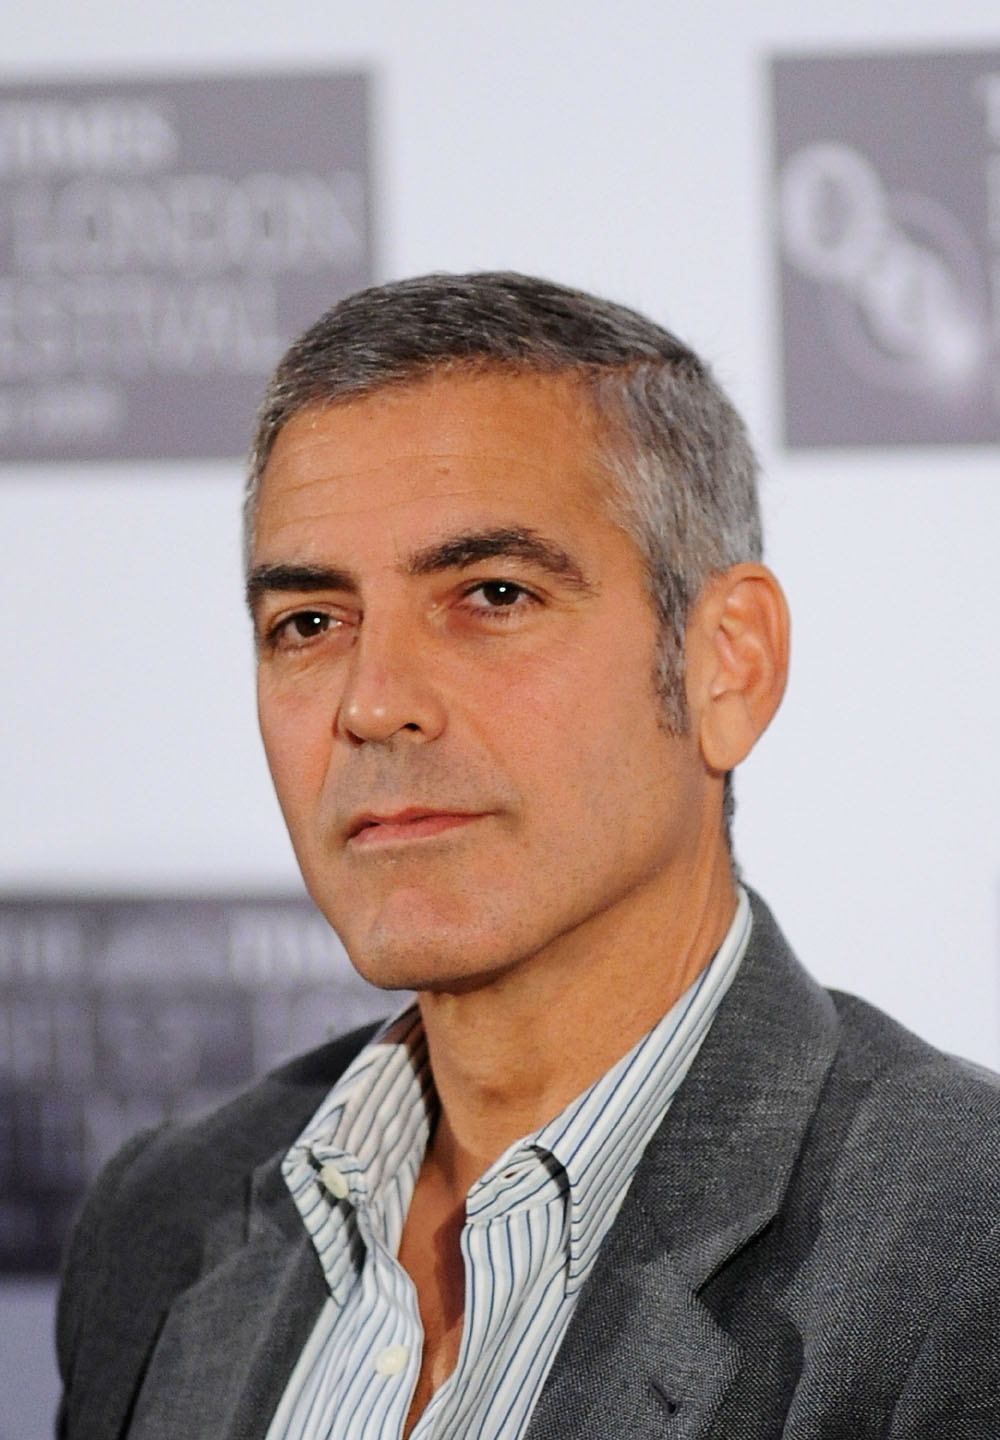 Latest Wallpapers Cars And Bikes George Clooney Hd Wallpapers High Definition Free